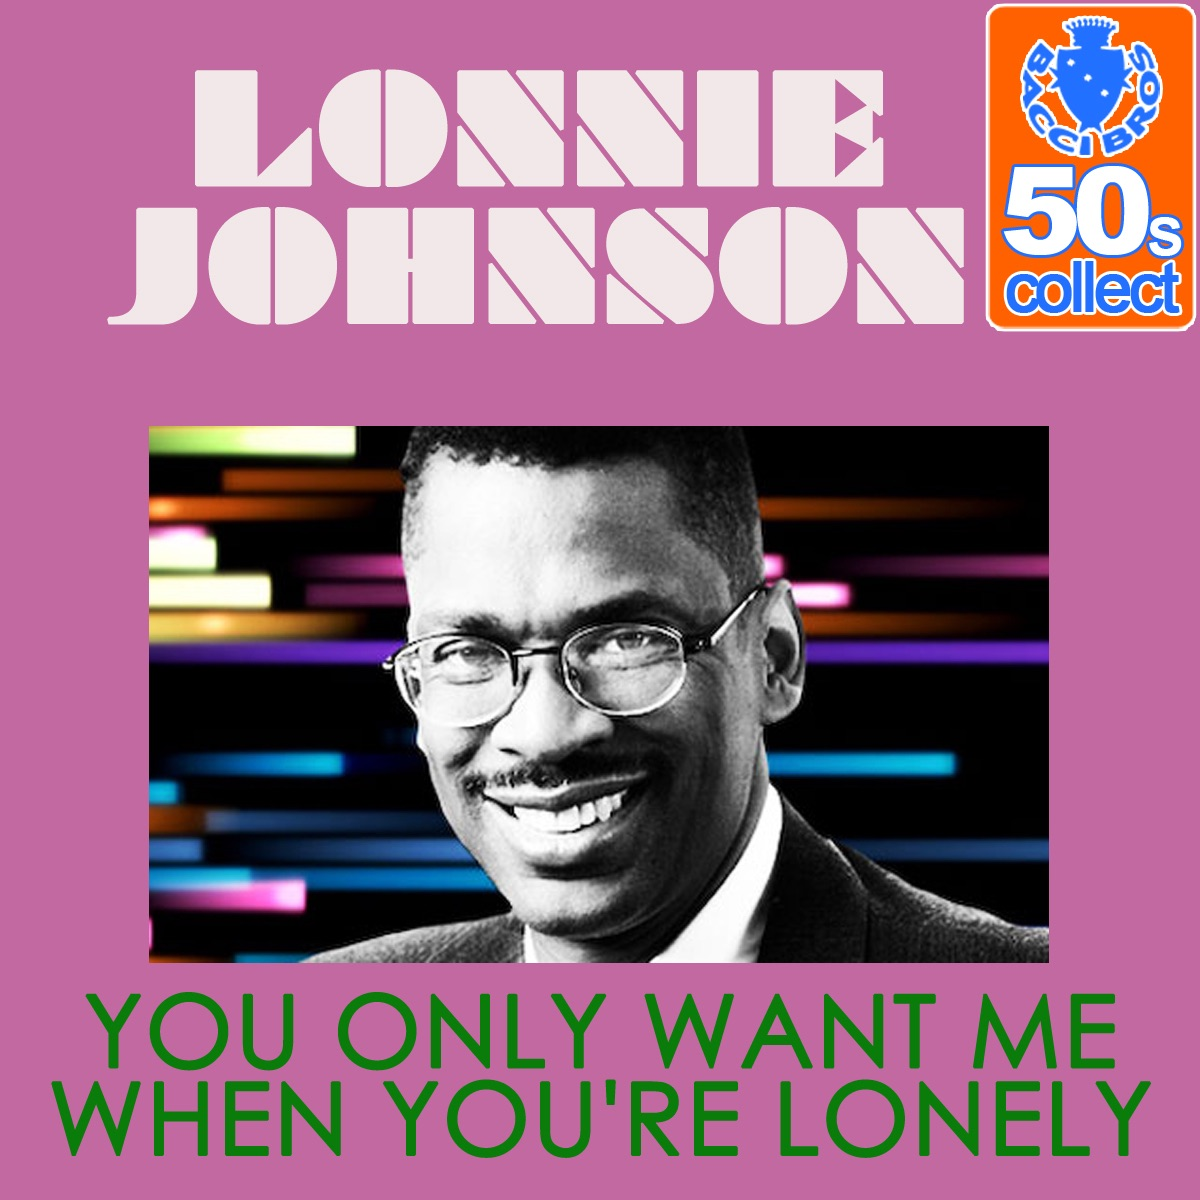 You Only Want Me When You're Lonely (Remastered) - Single